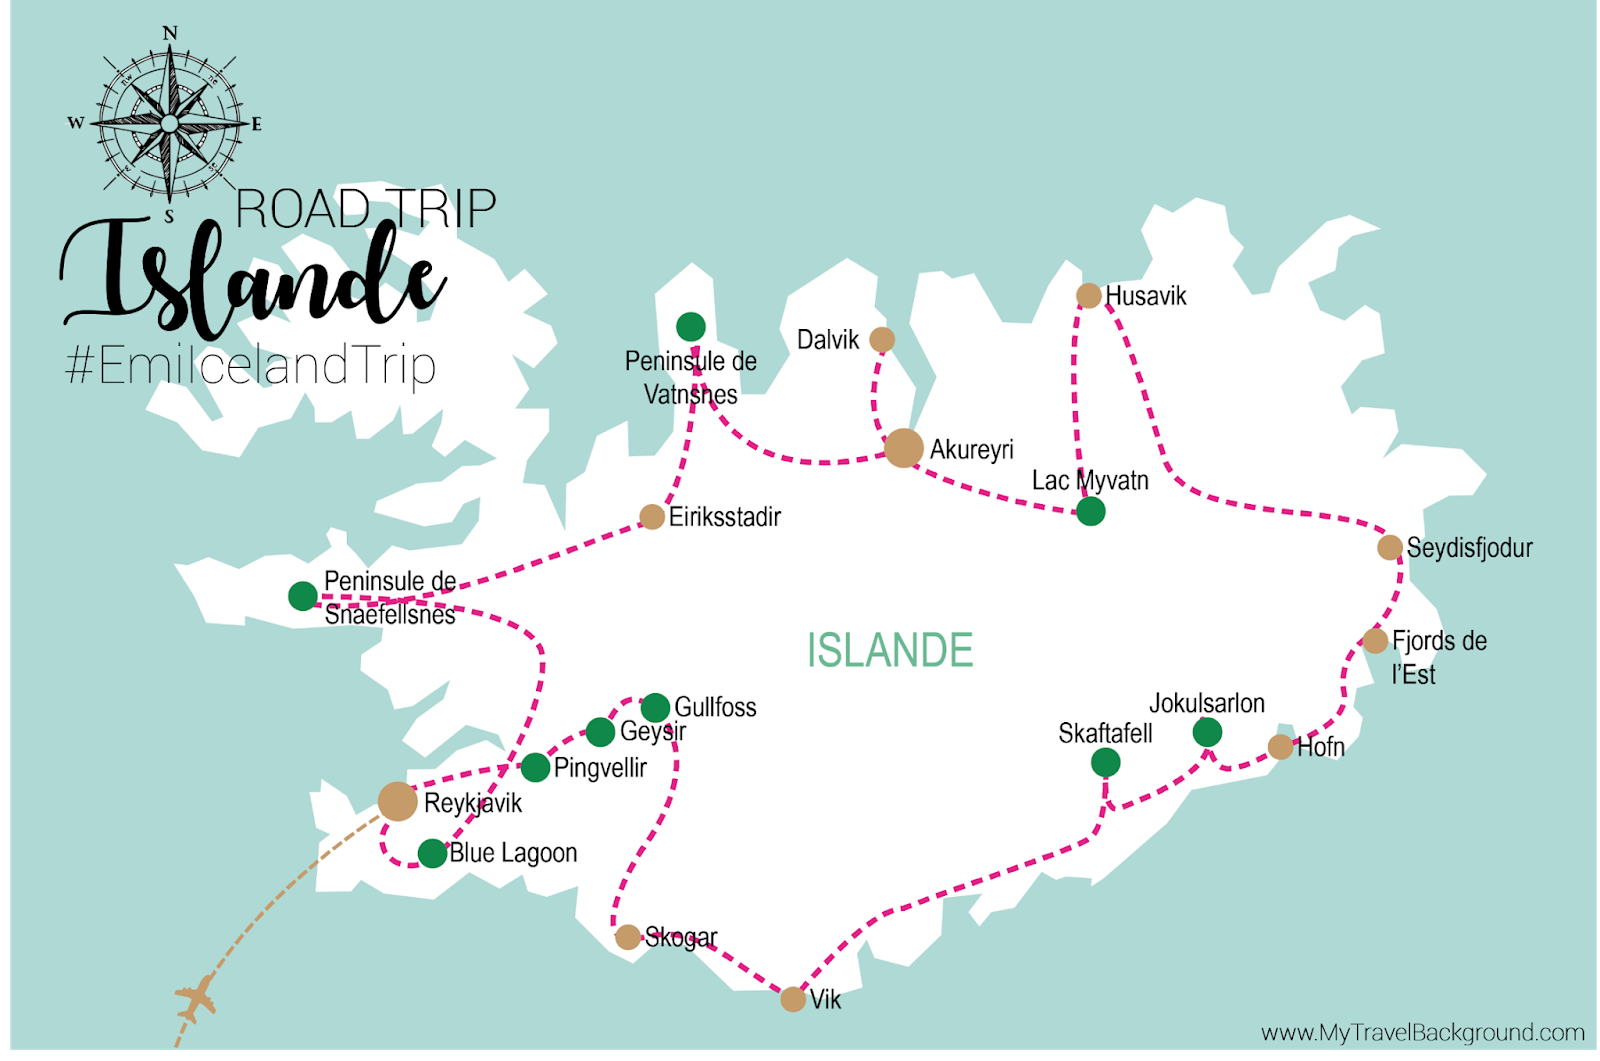 My Travel Background : mon road trip en Islande - Itinéraire